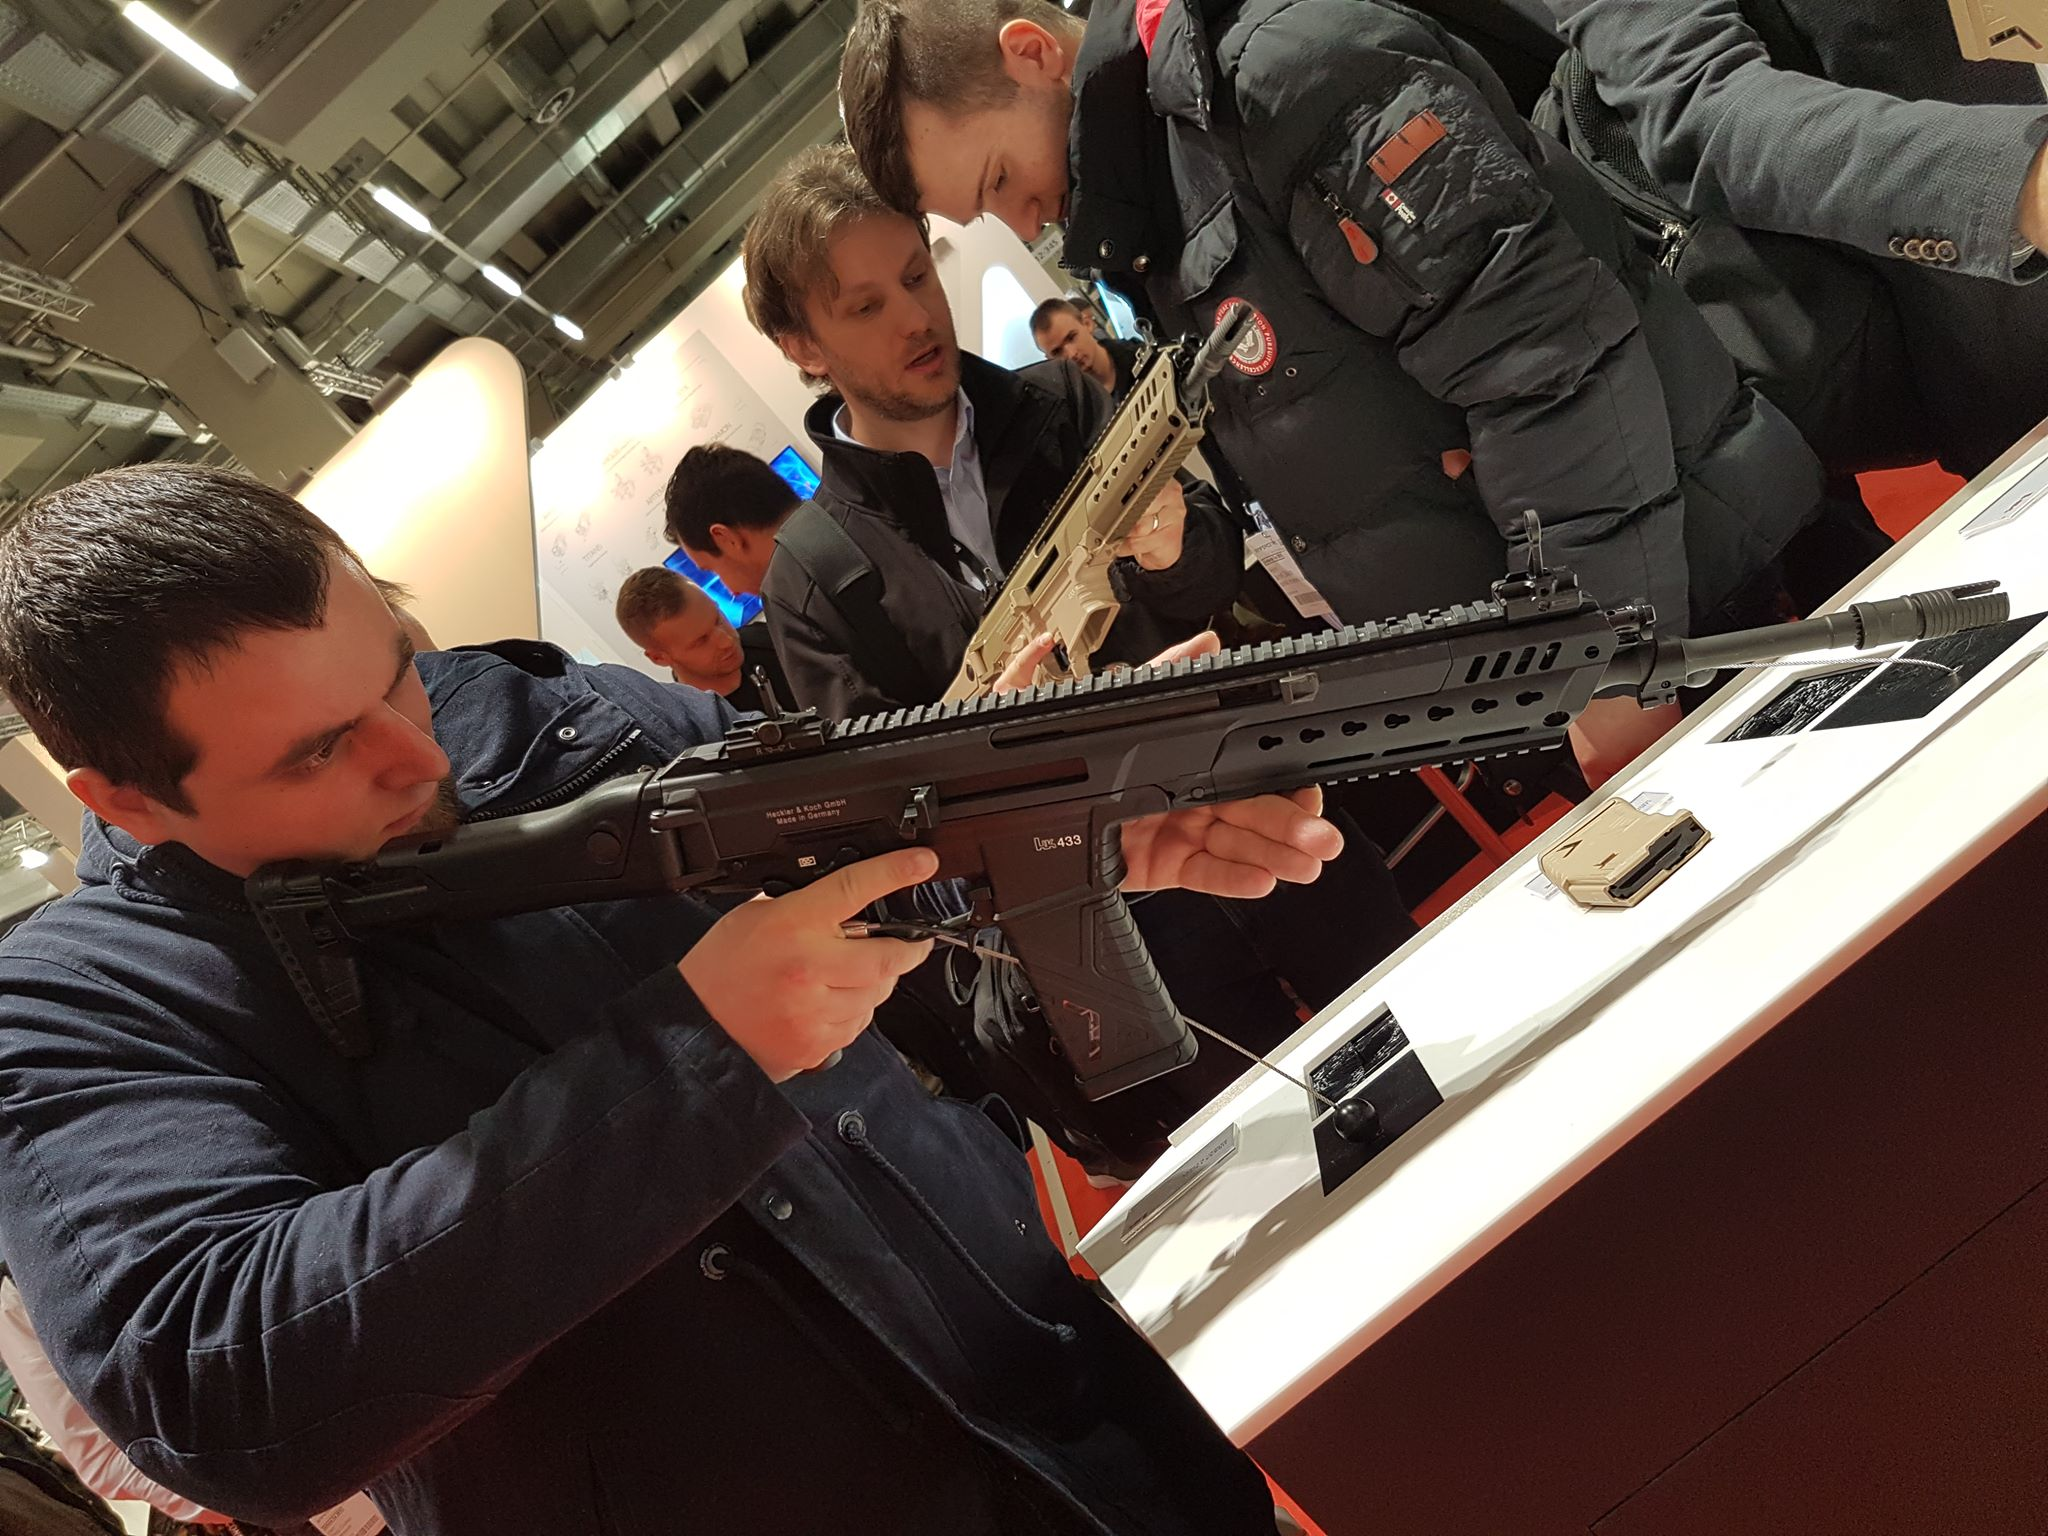 HK433 - The new assault rifle from HK-58629814_1050885491768533_8476761894512754688_o.jpg